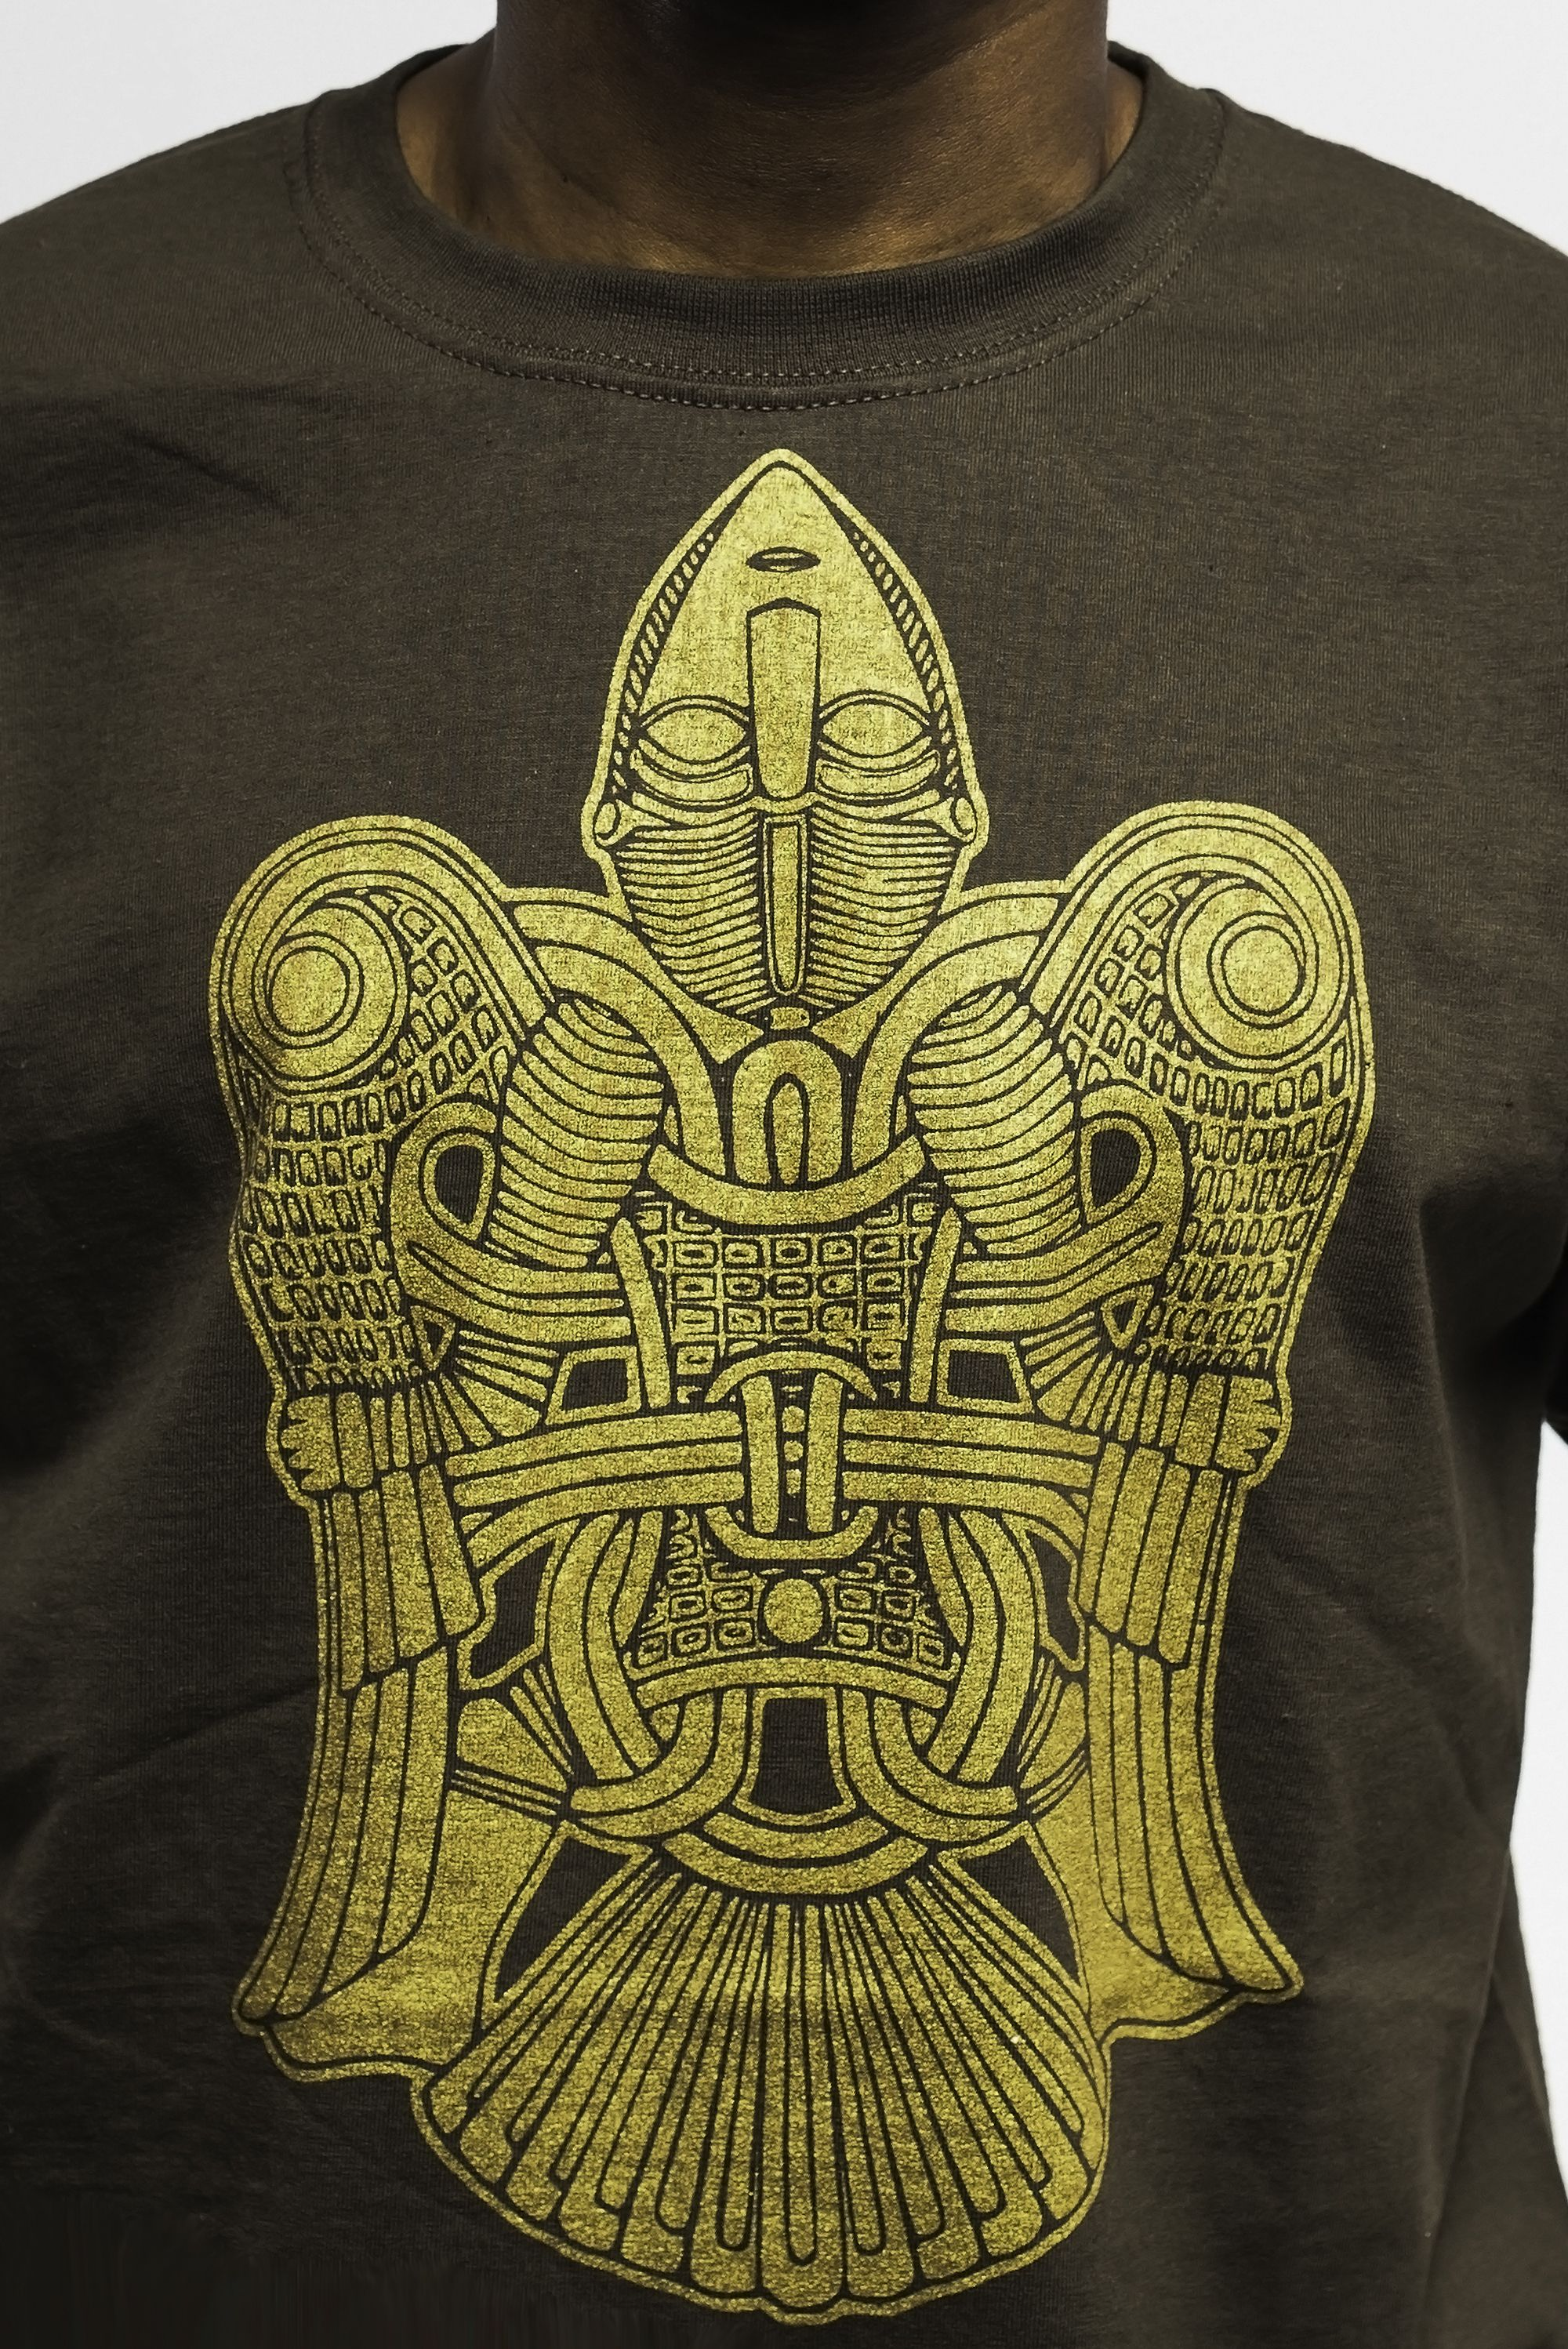 Brown t-shirt  #angel #viking